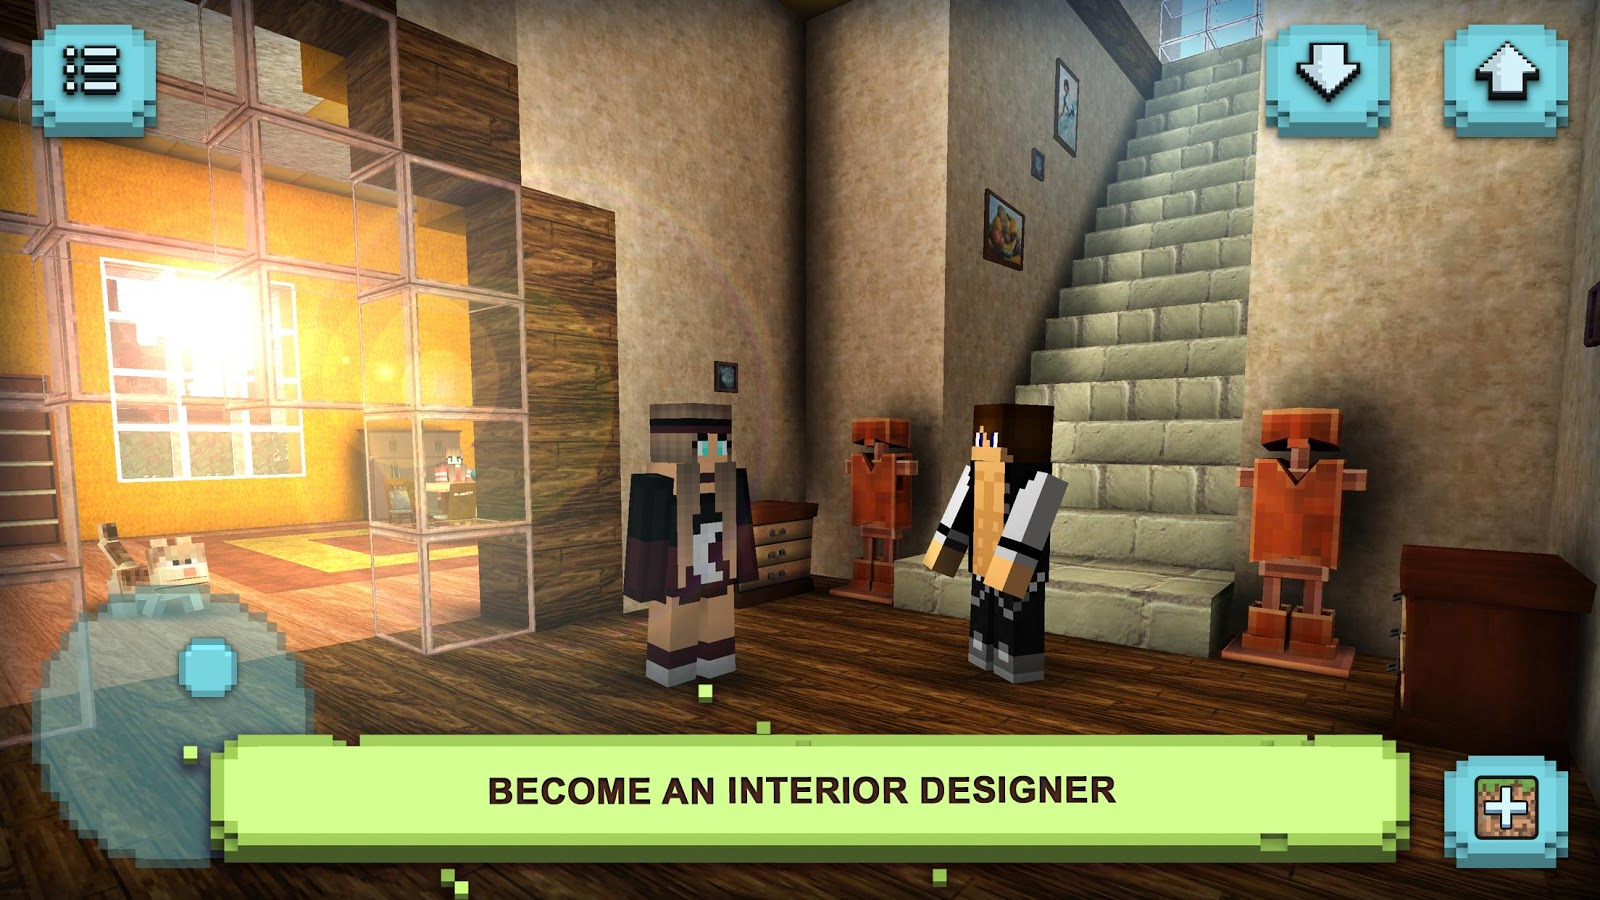 Dream house craft design block building games android for Crafting and building app store